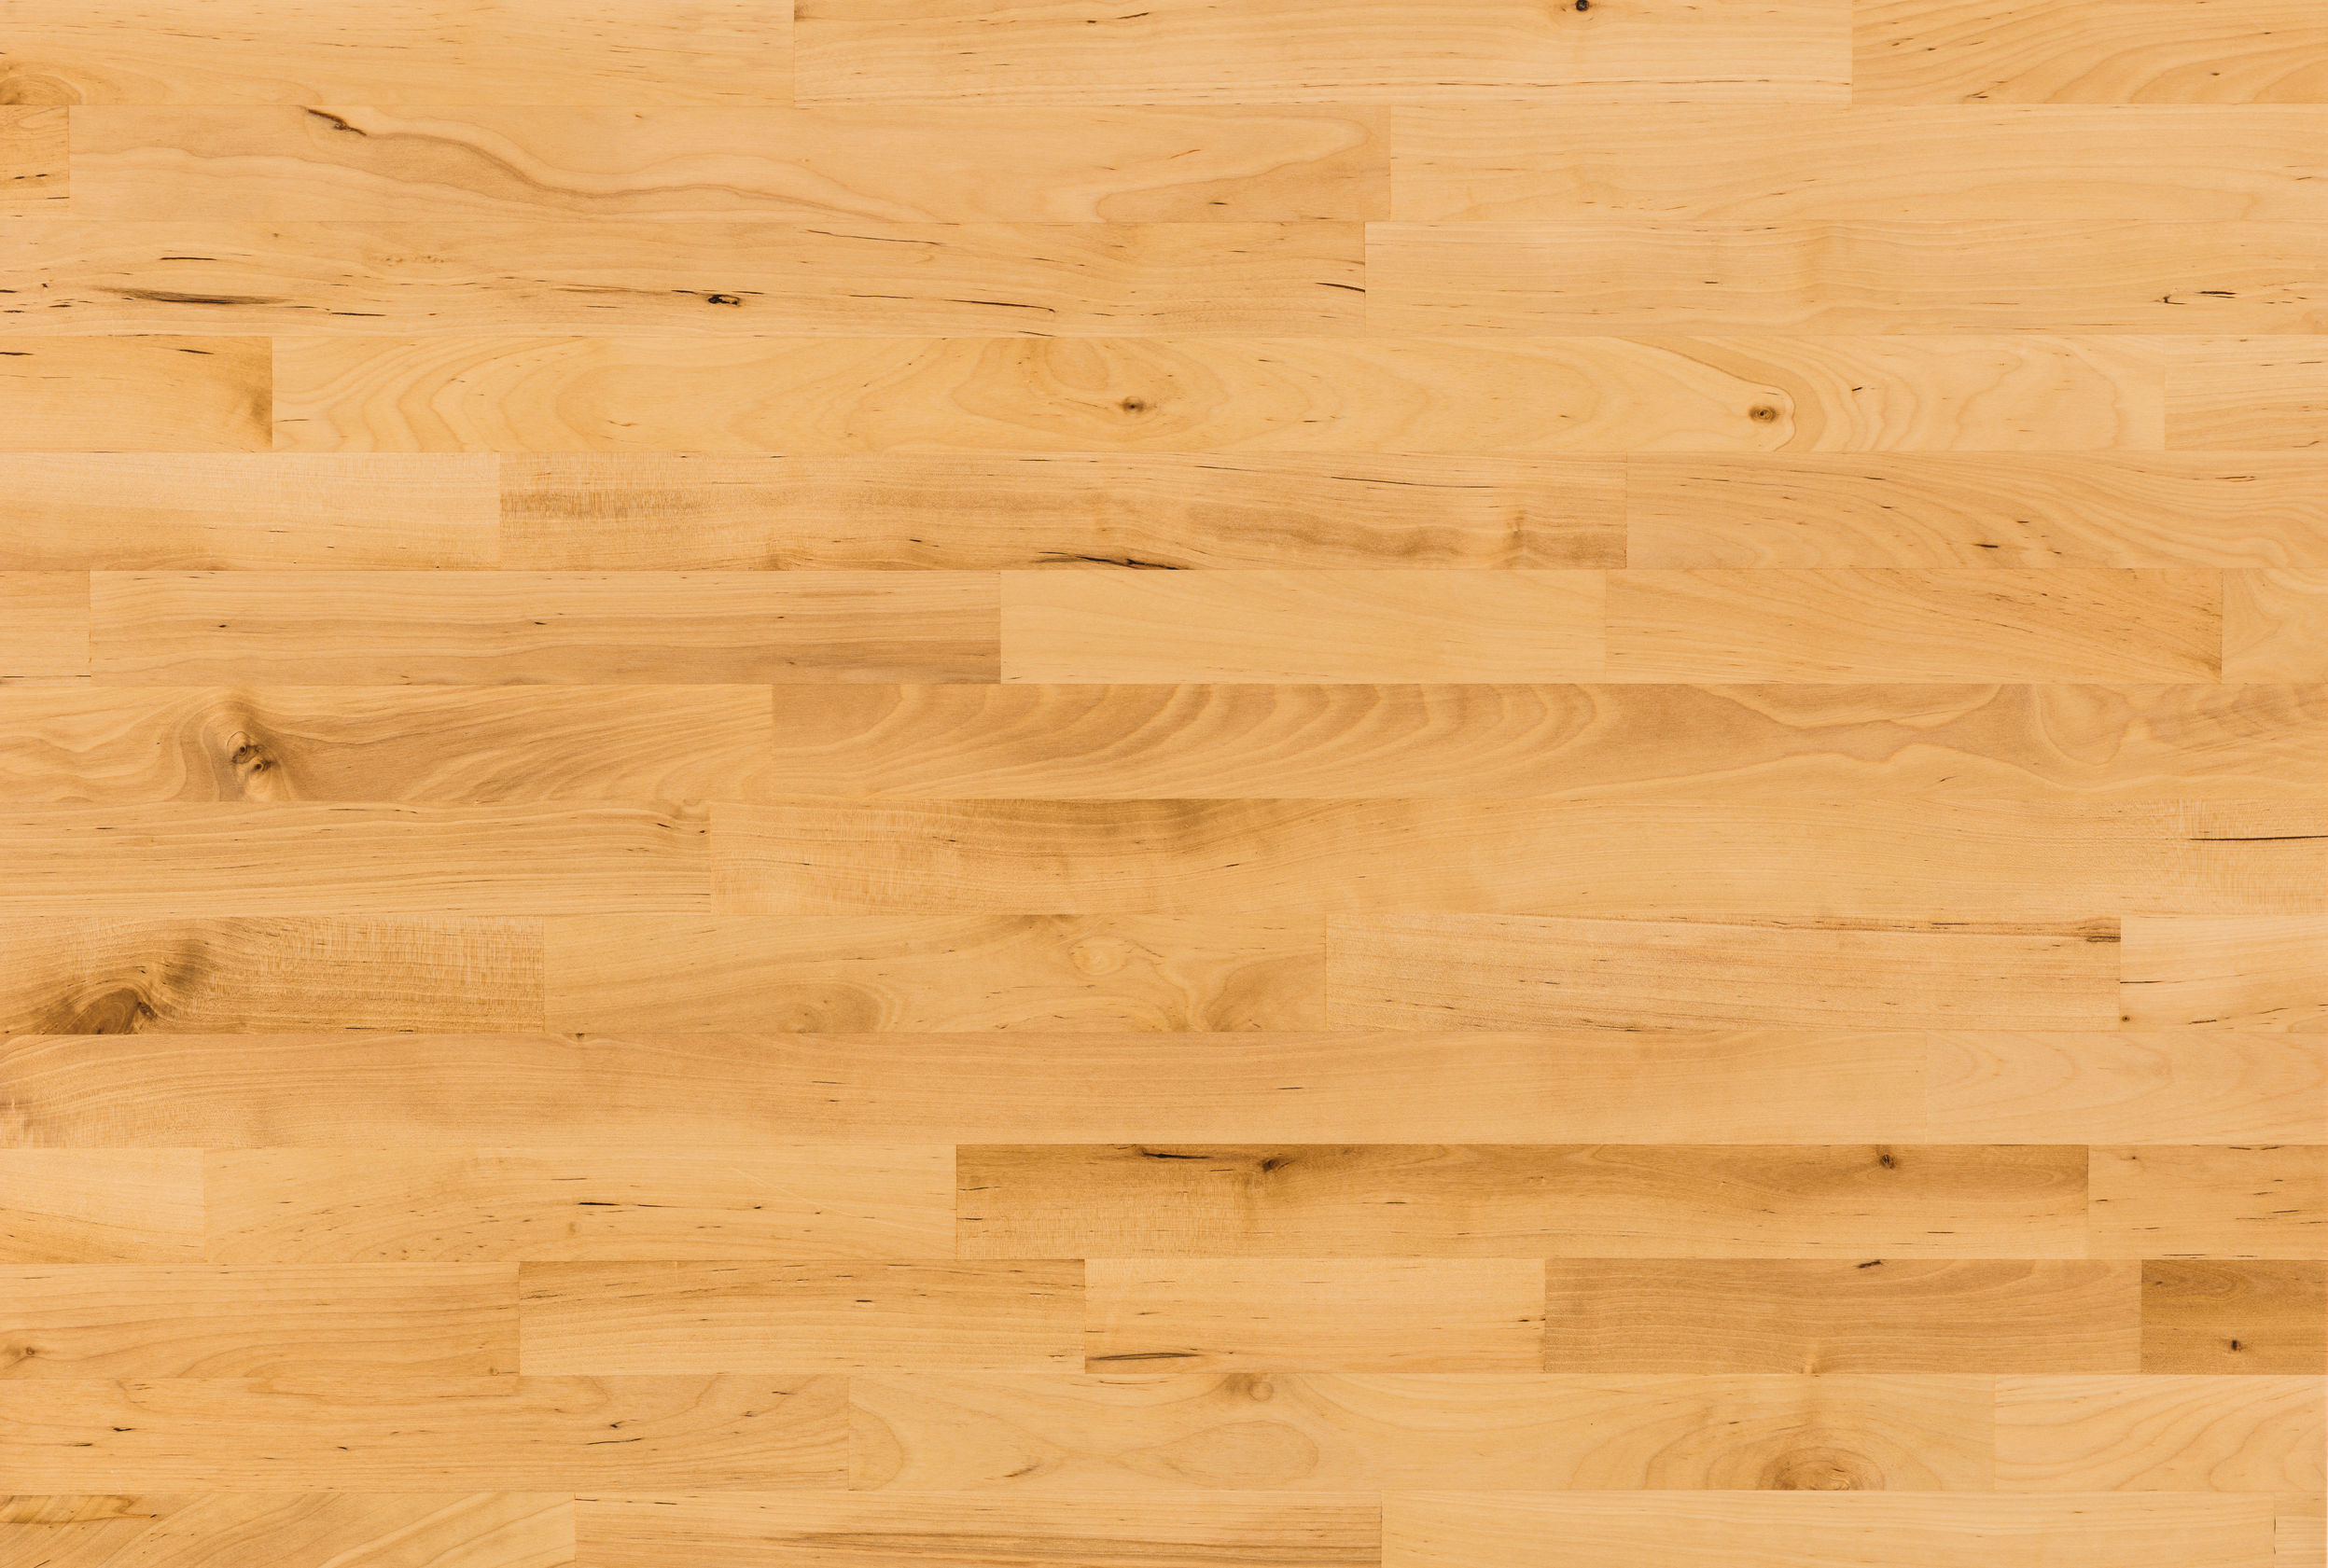 with some birch flooring options, the sapwood and heartwood may be blended XSKPRHI